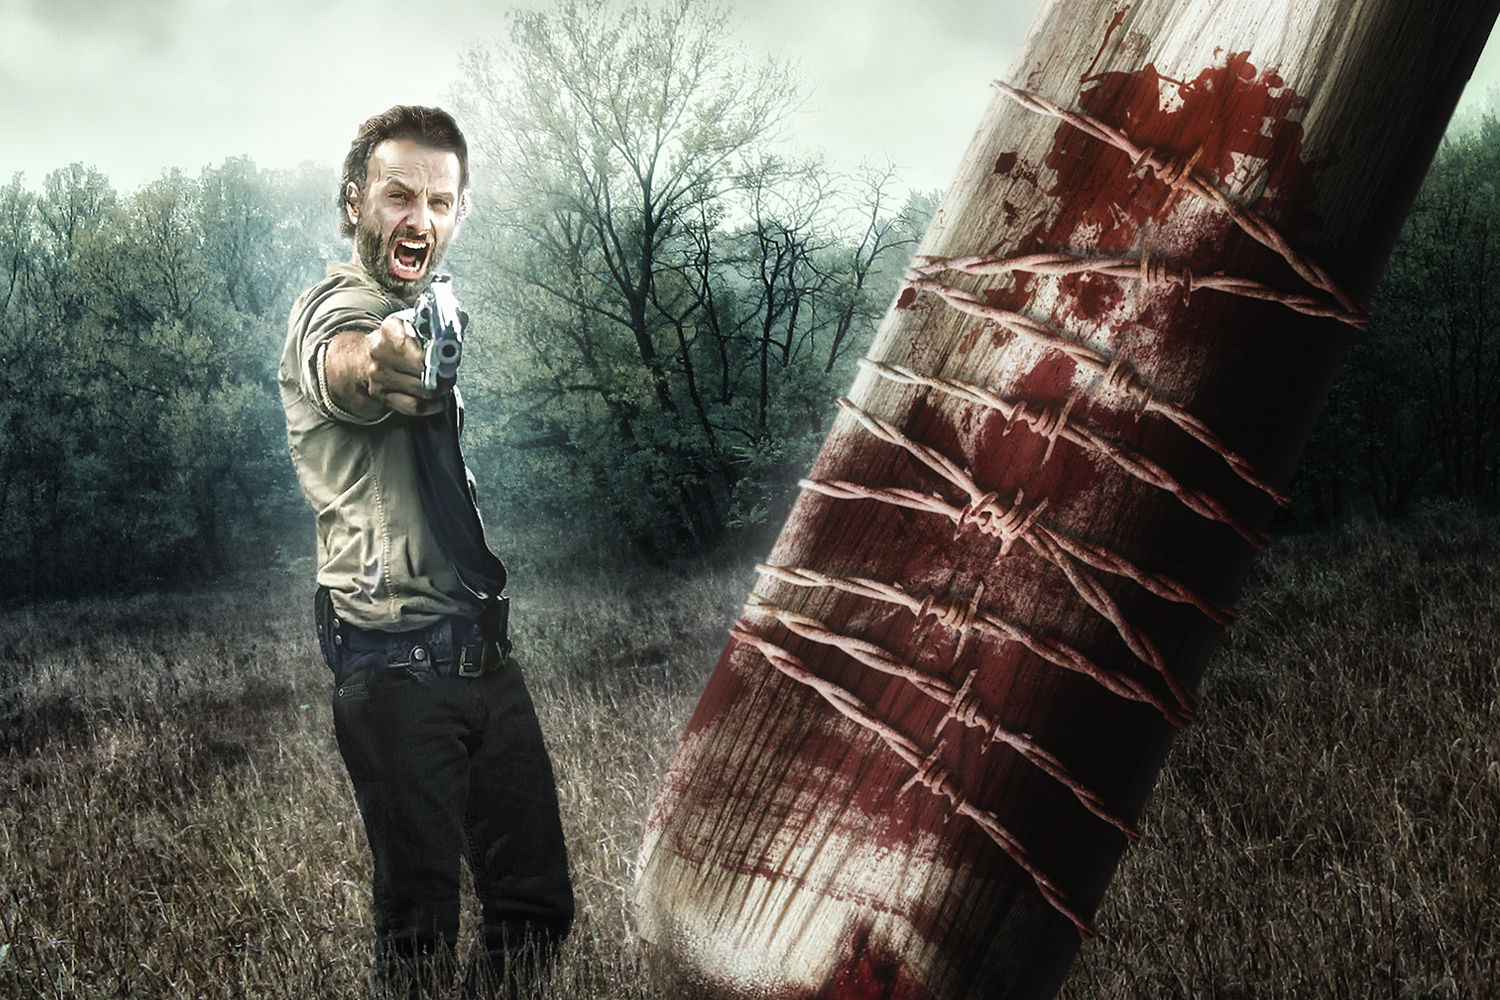 Free Download Images Walking Dead Season 6 Wallpaper 1500x1000